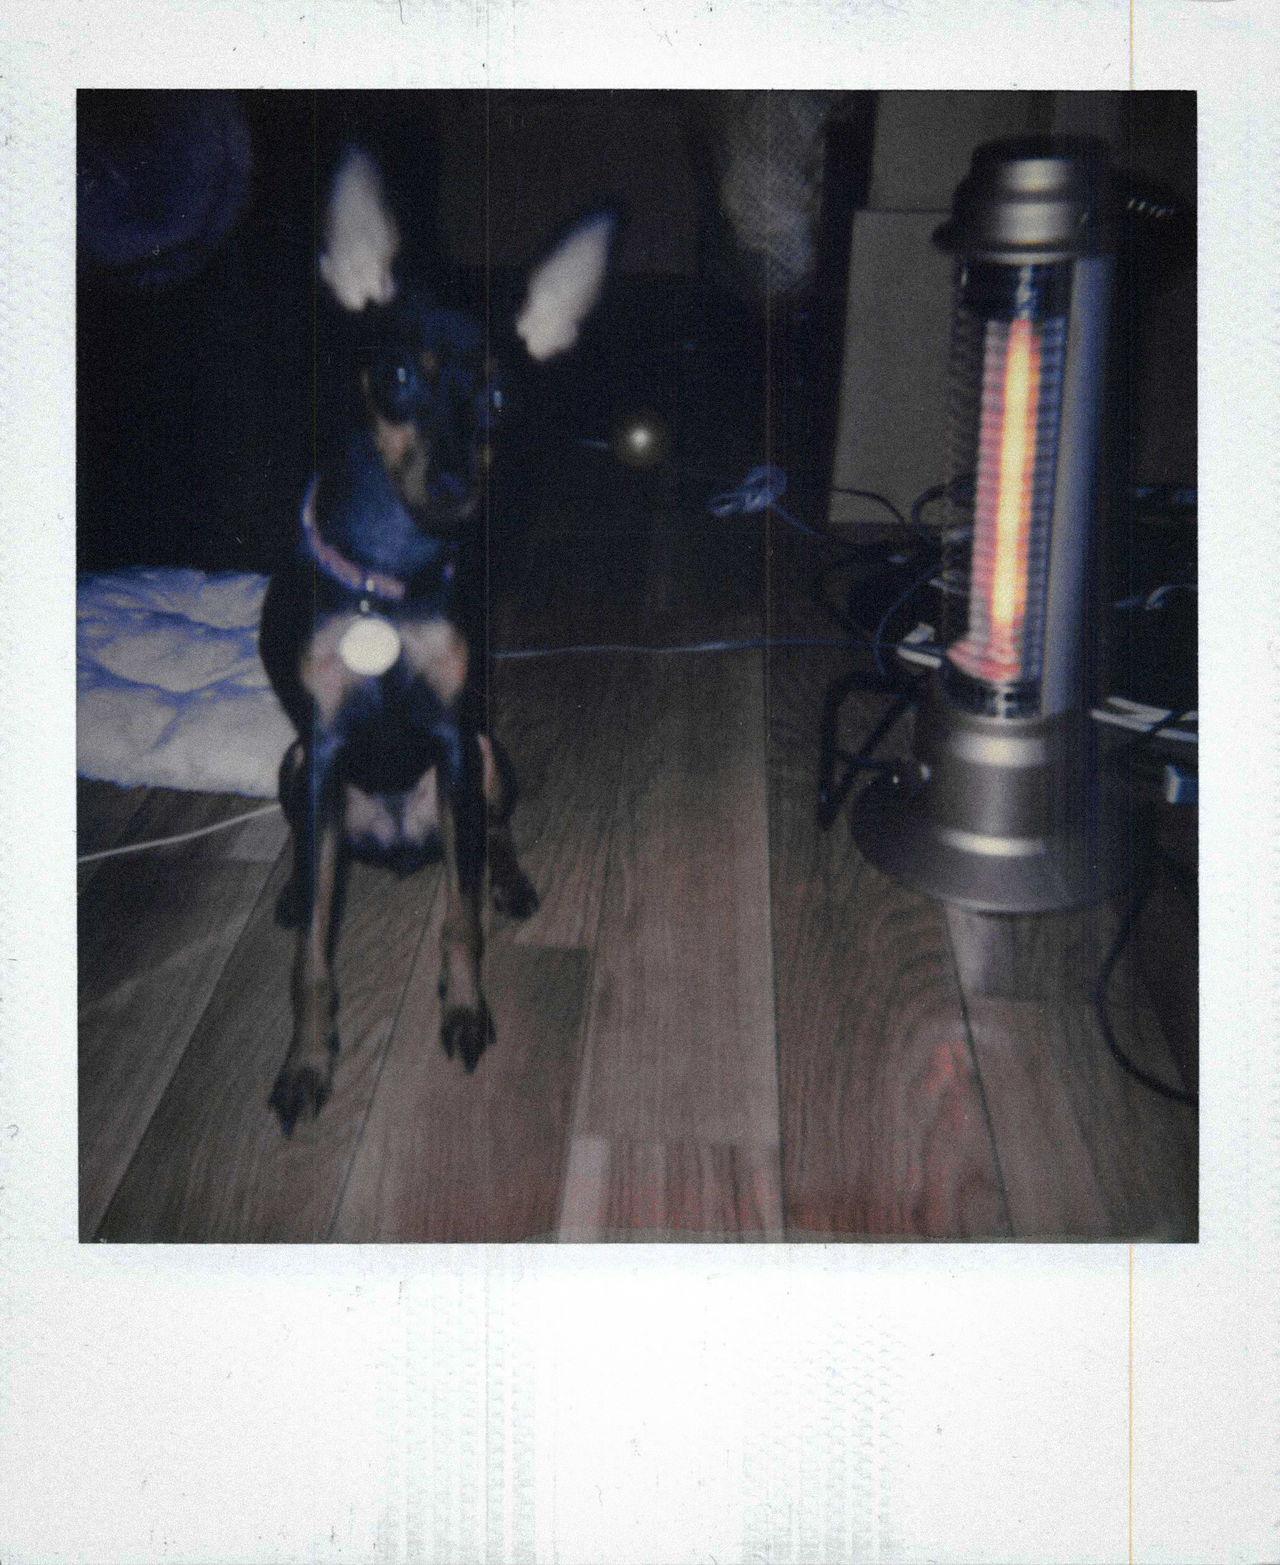 Digital Vs Analog Film Impossible Project Polaroid Polaroid 600 Looking At Camera Photographic Memory Animal Animal Themes Classic Day Dog Domestic Animals Indoors  Low Section No People One Animal Pets Simple Moment Relaxing Indoors  Scan